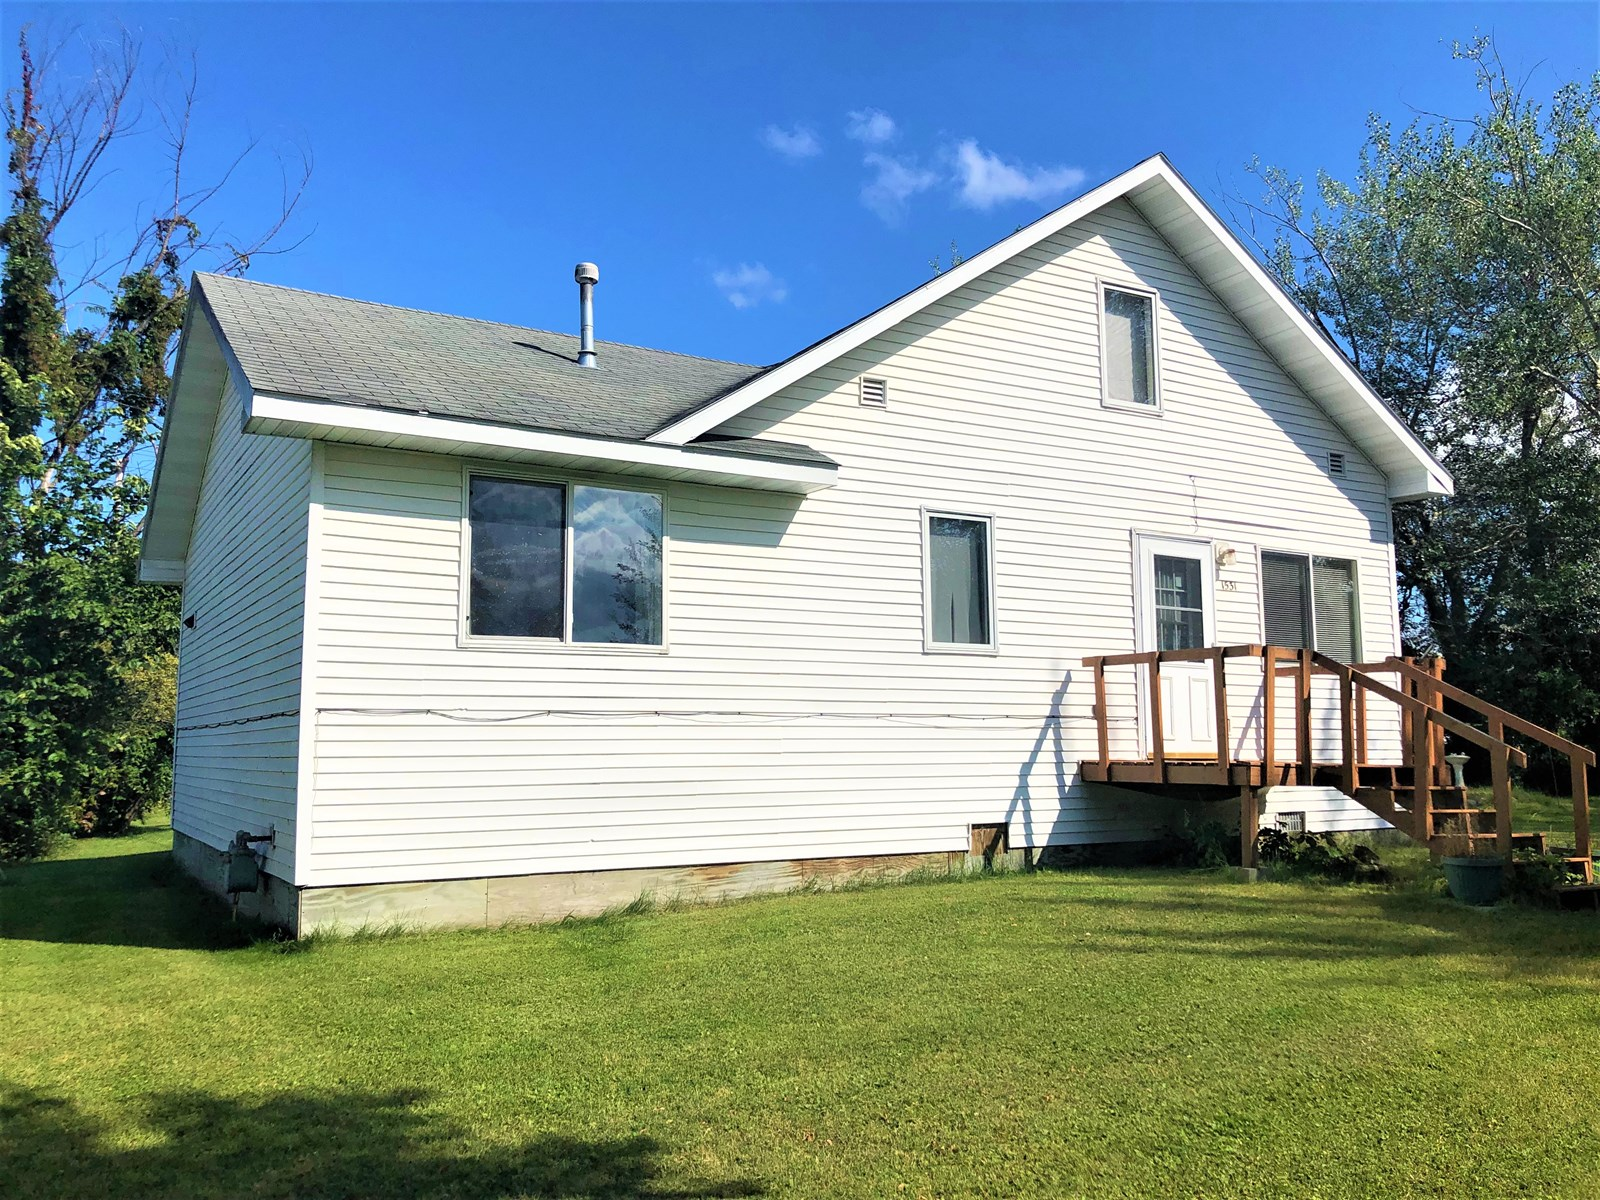 Home in town for sale International Falls, MN